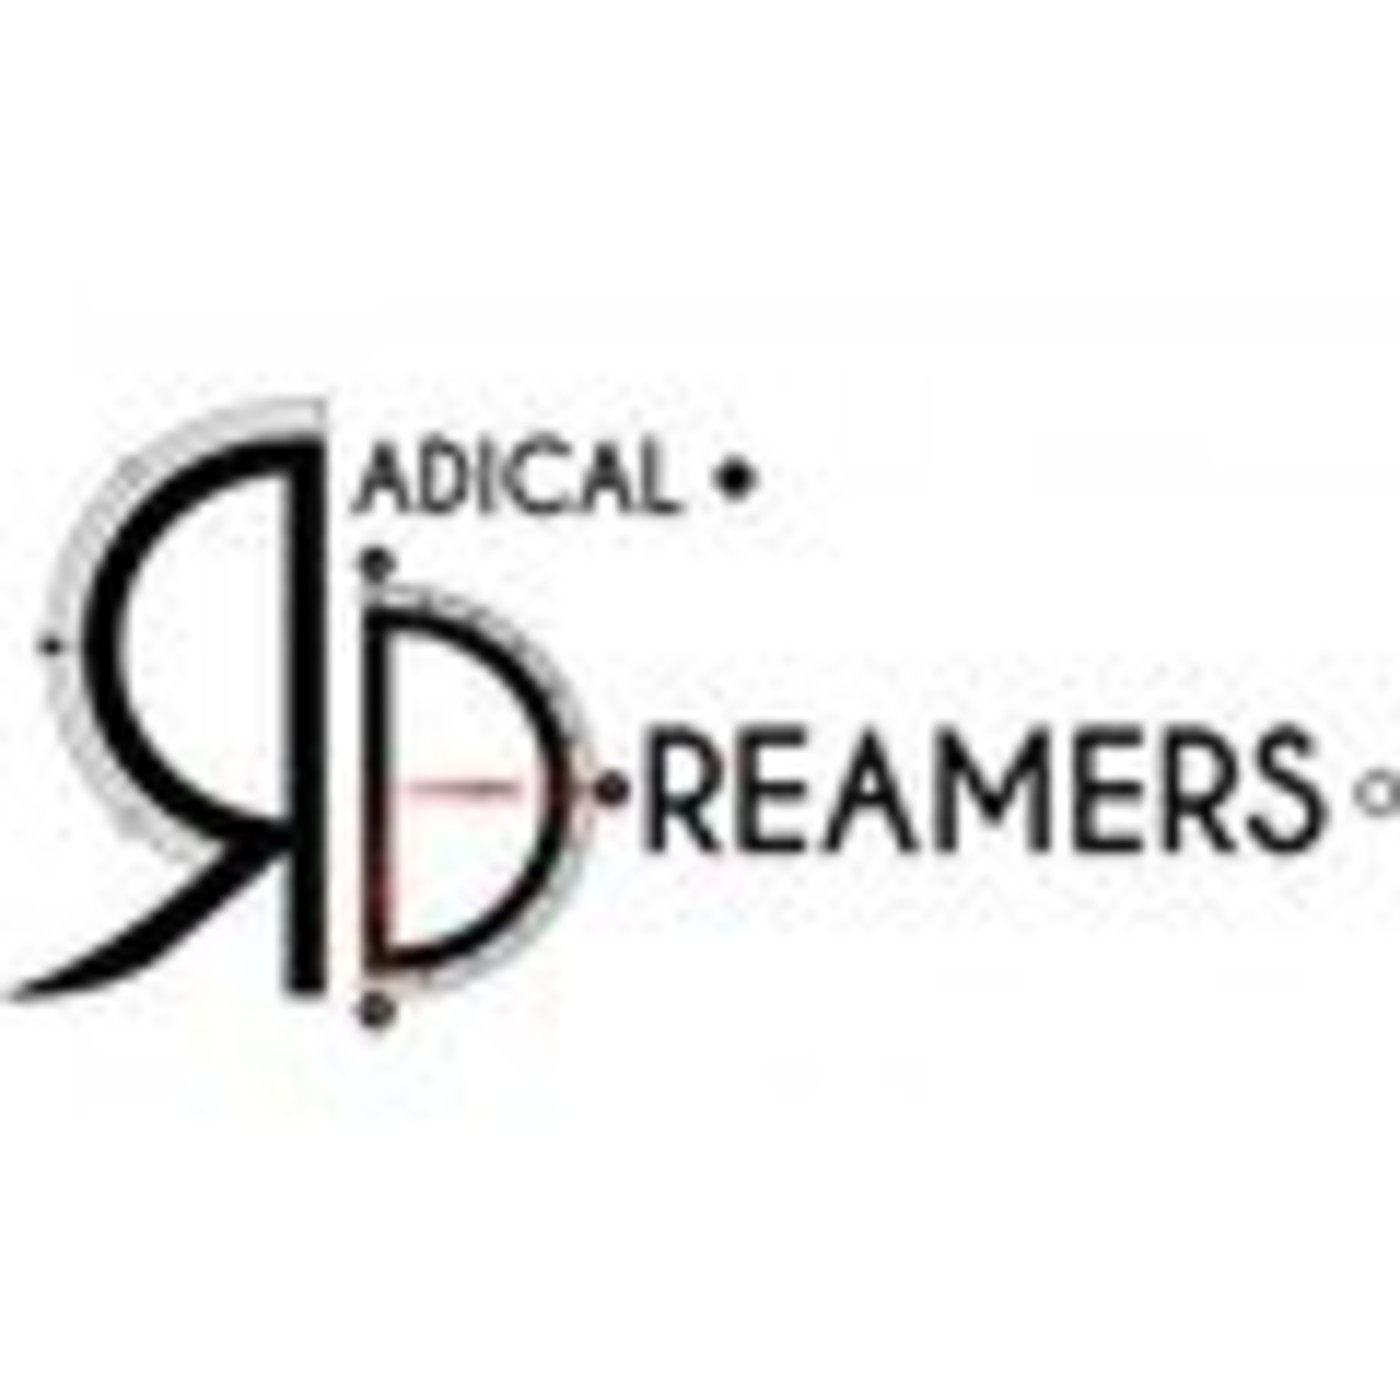 RadicalDreamers